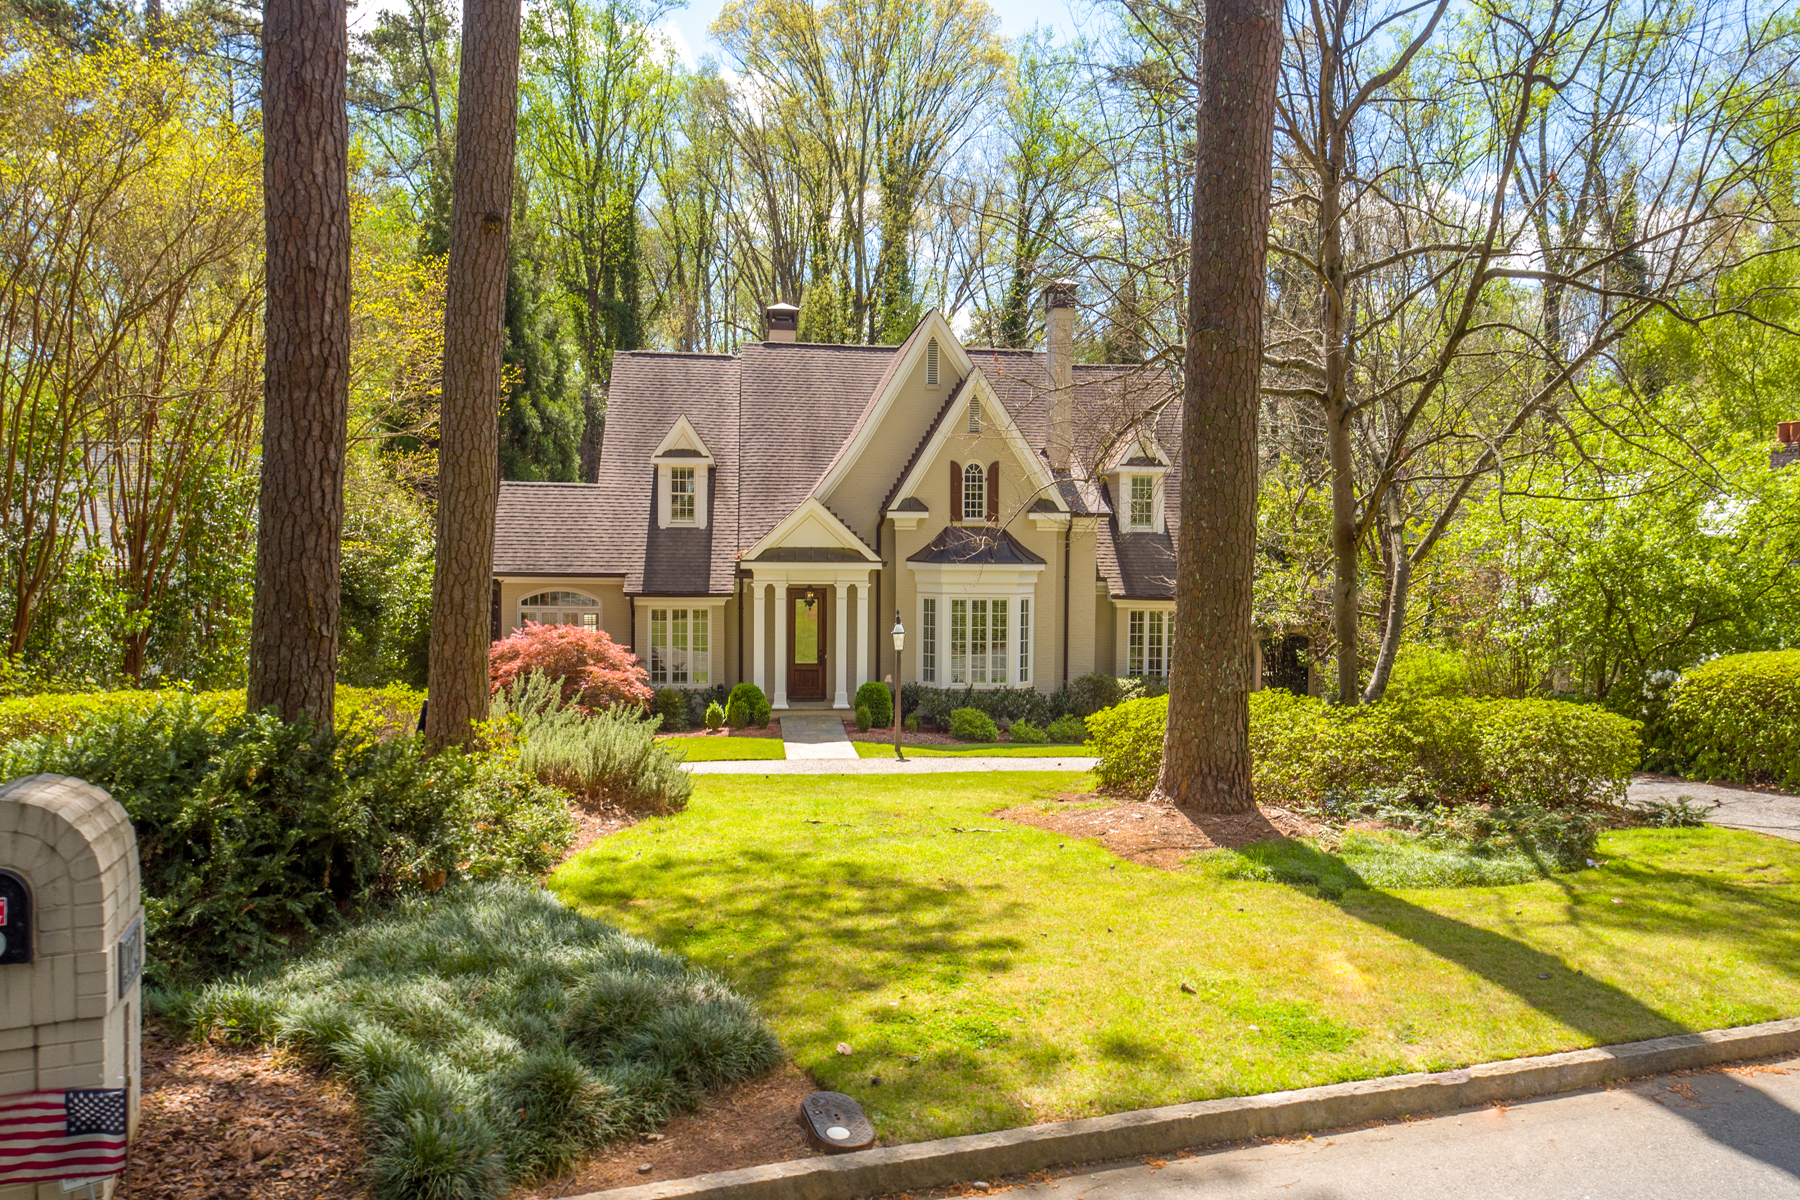 Single Family Home for Sale at Gorgeous Home In Ideal Brookhaven Location 4124 Club Drive Brookhaven, Atlanta, Georgia, 30319 United States